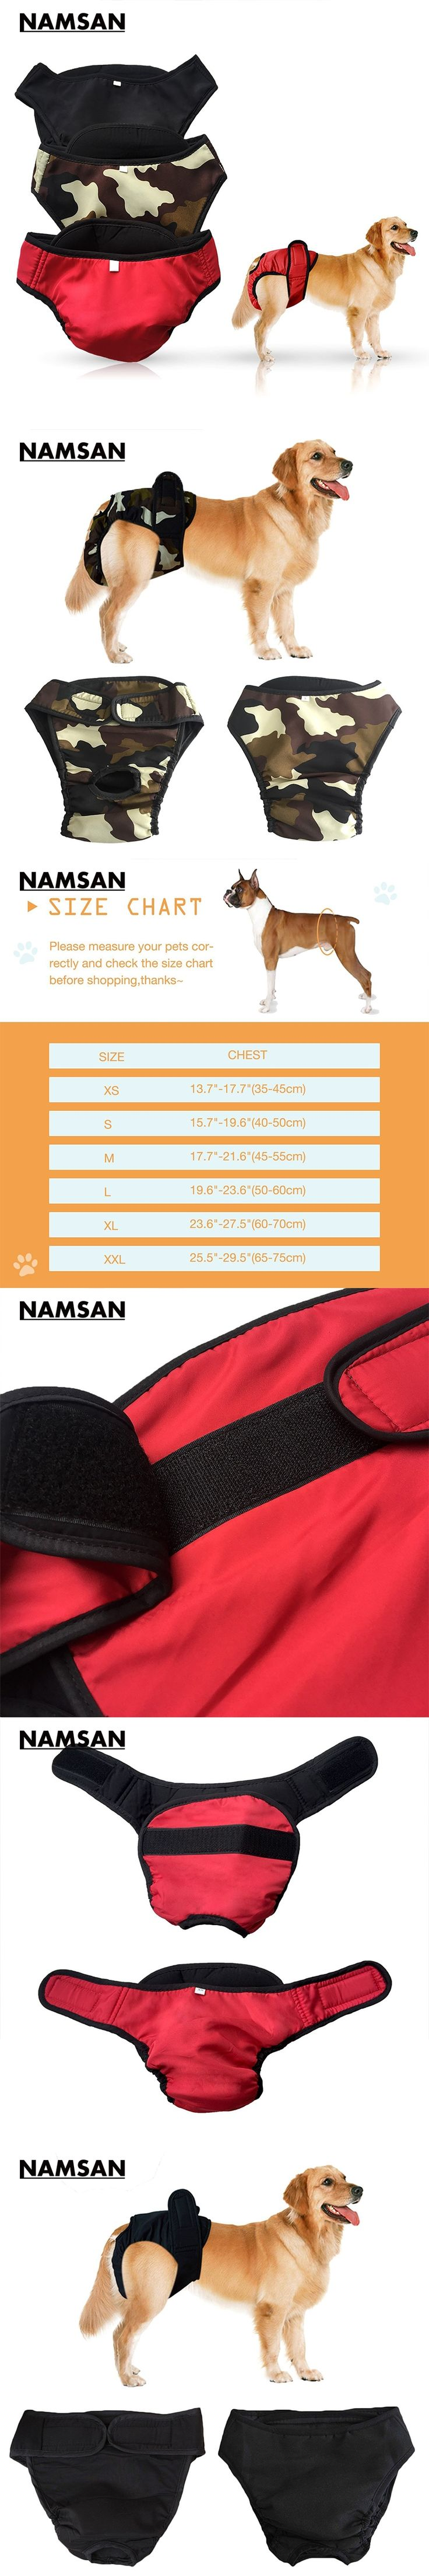 Namsan Large Dog Diaper Sanitary Physiological Pants S-XL Washable Female Dog Shorts Panties Menstruation Underwear Briefs Pet